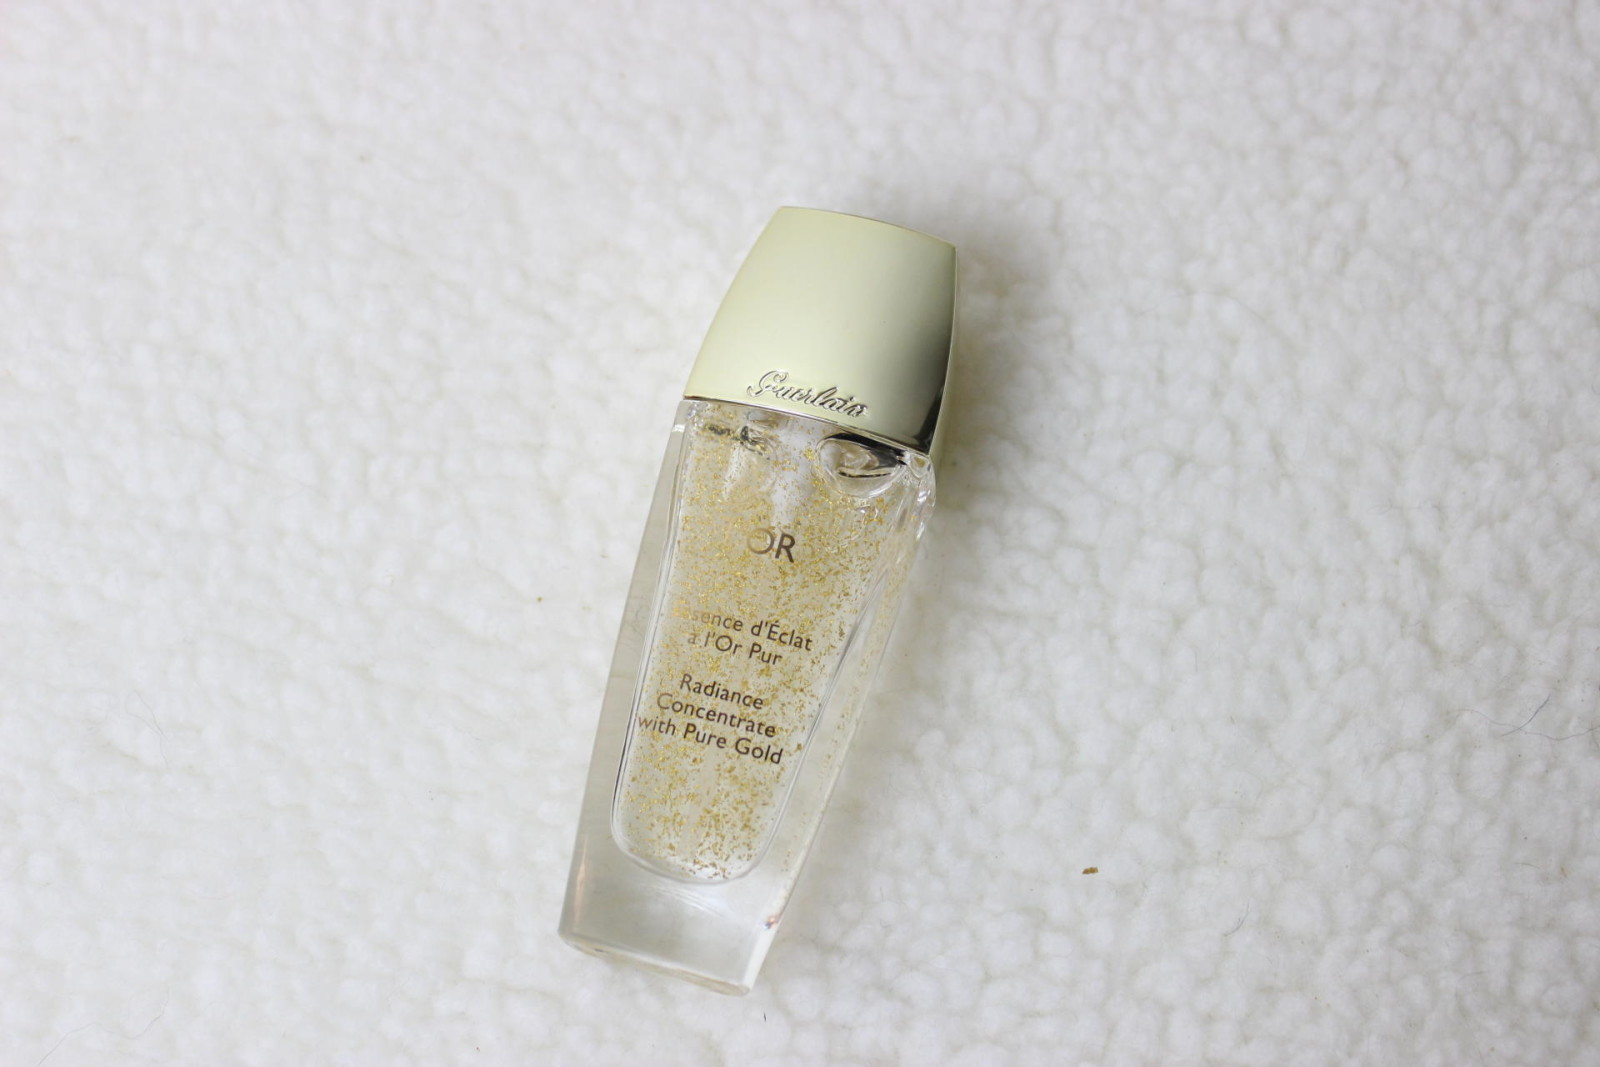 Guerlain L'Or radiance base